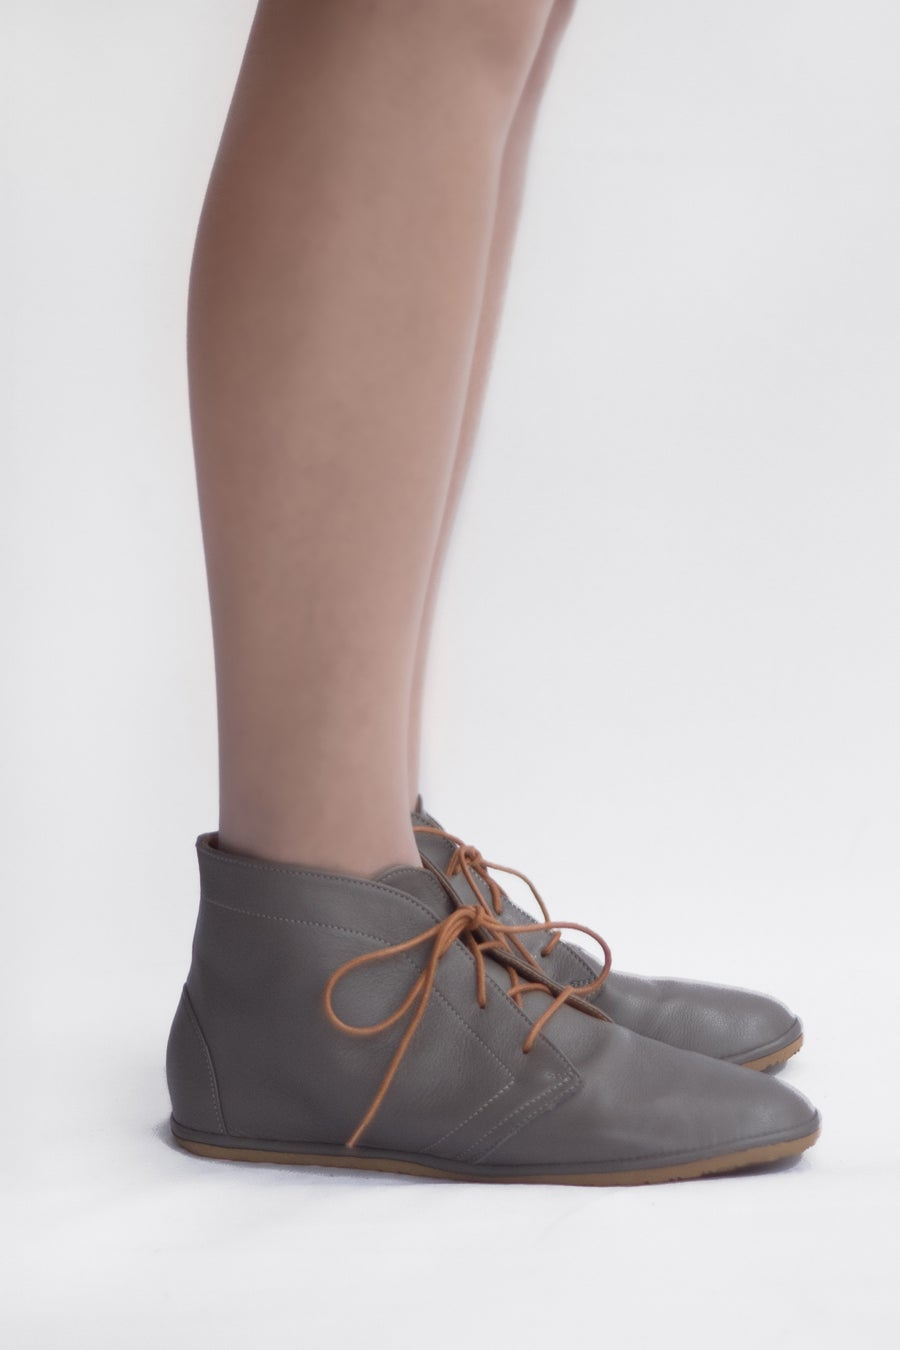 Image of  Leona boots in Matte Grey